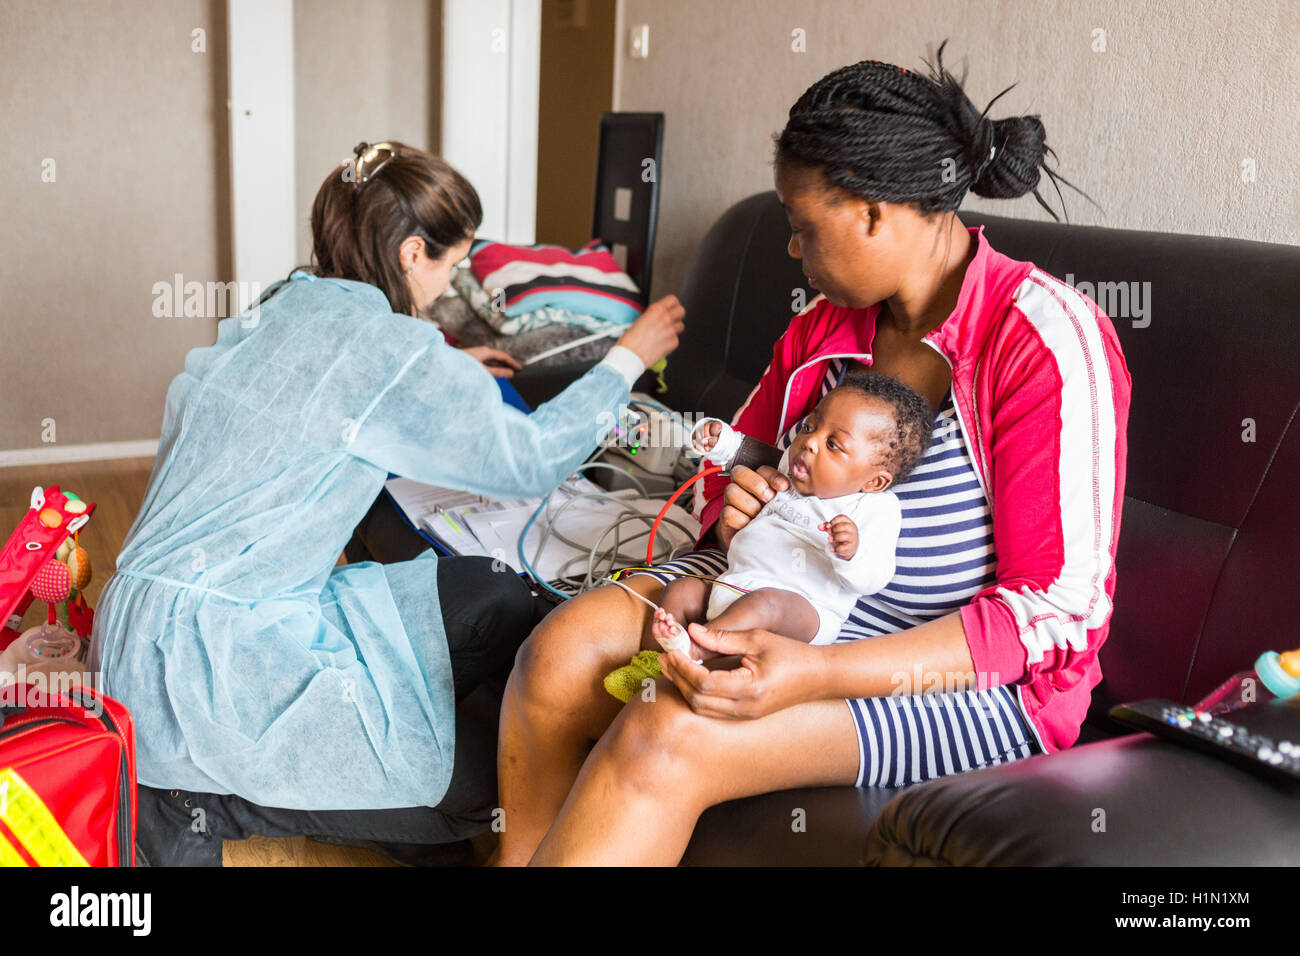 Nurse home visit from a baby born premature, Home medical care department of Limoges hospital, France. - Stock Image